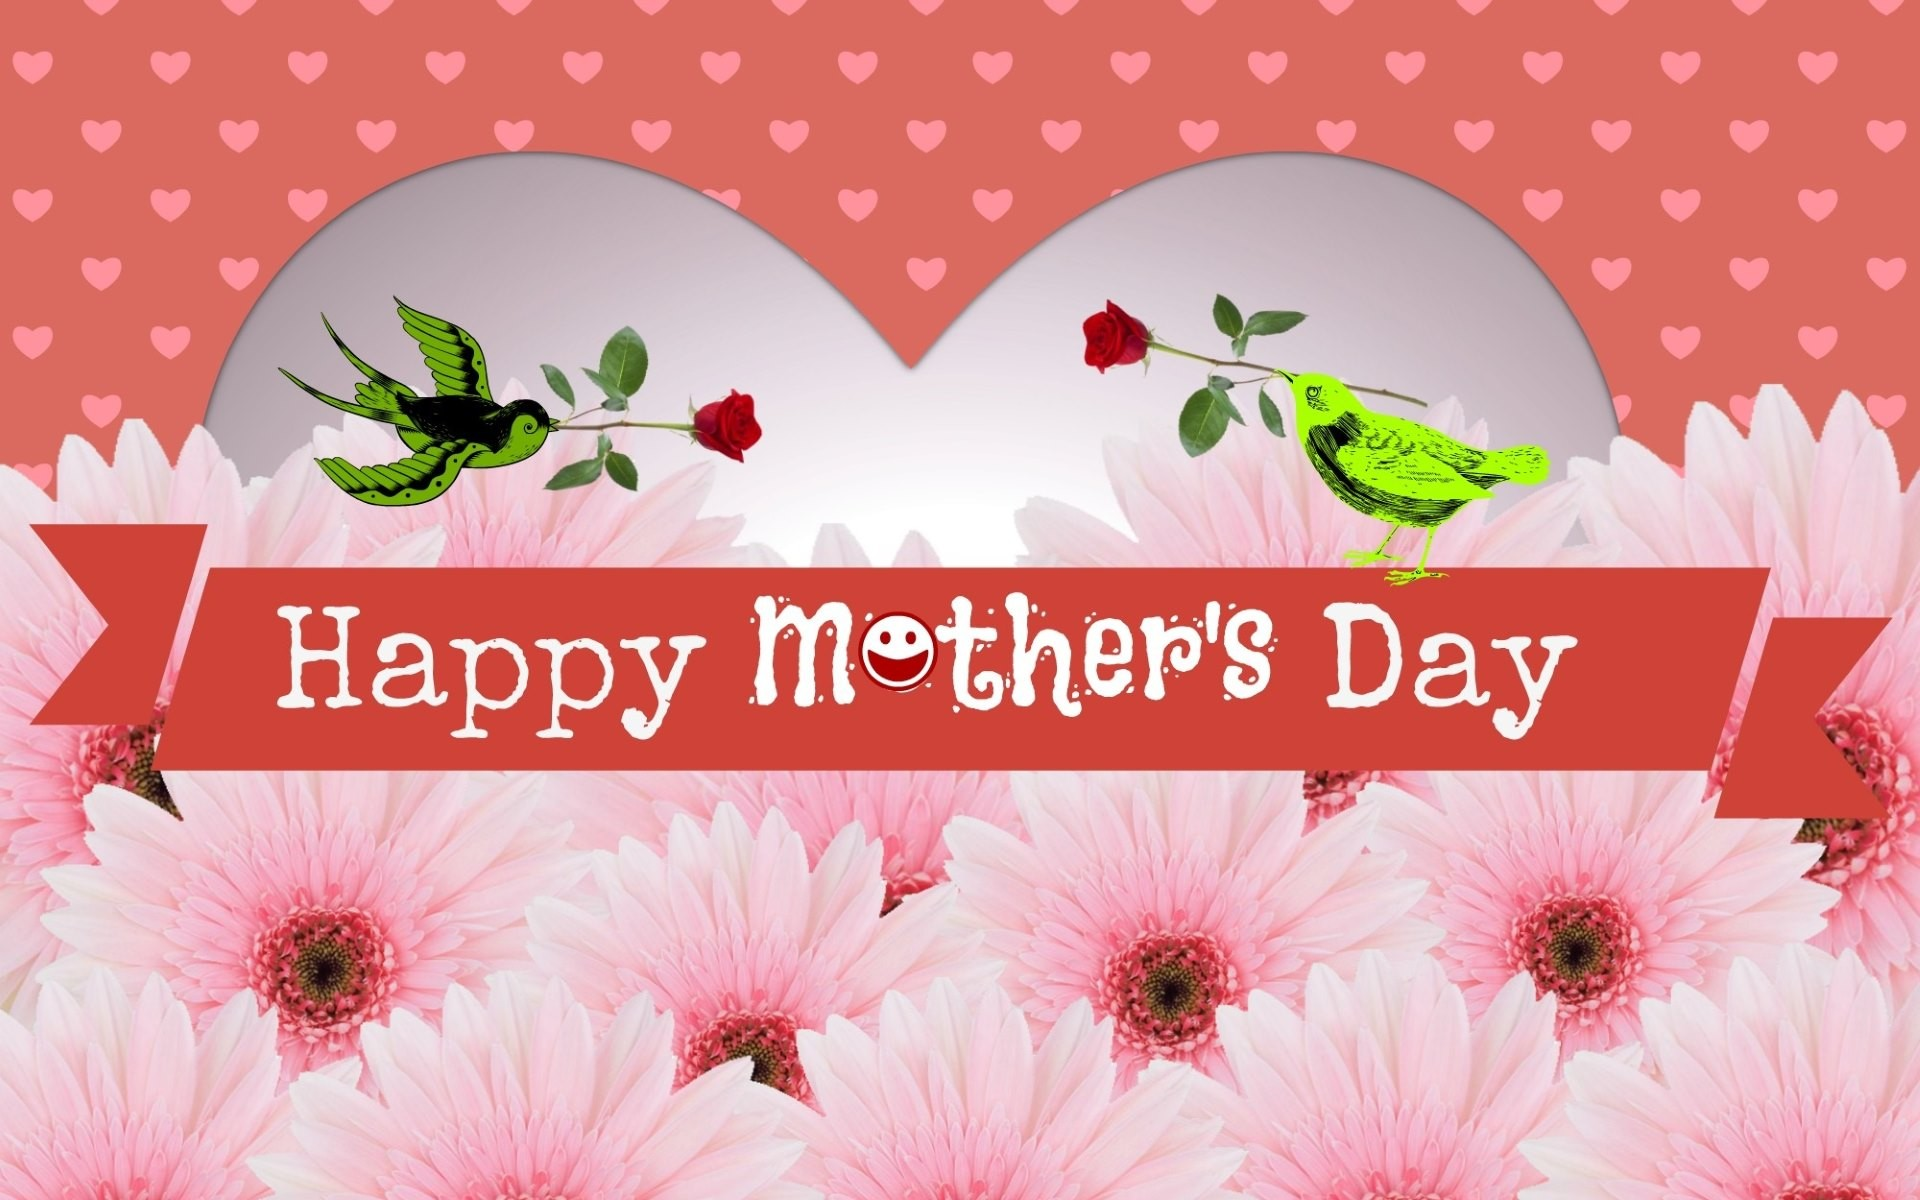 Mothers Day Wallpaper Images 54 Images